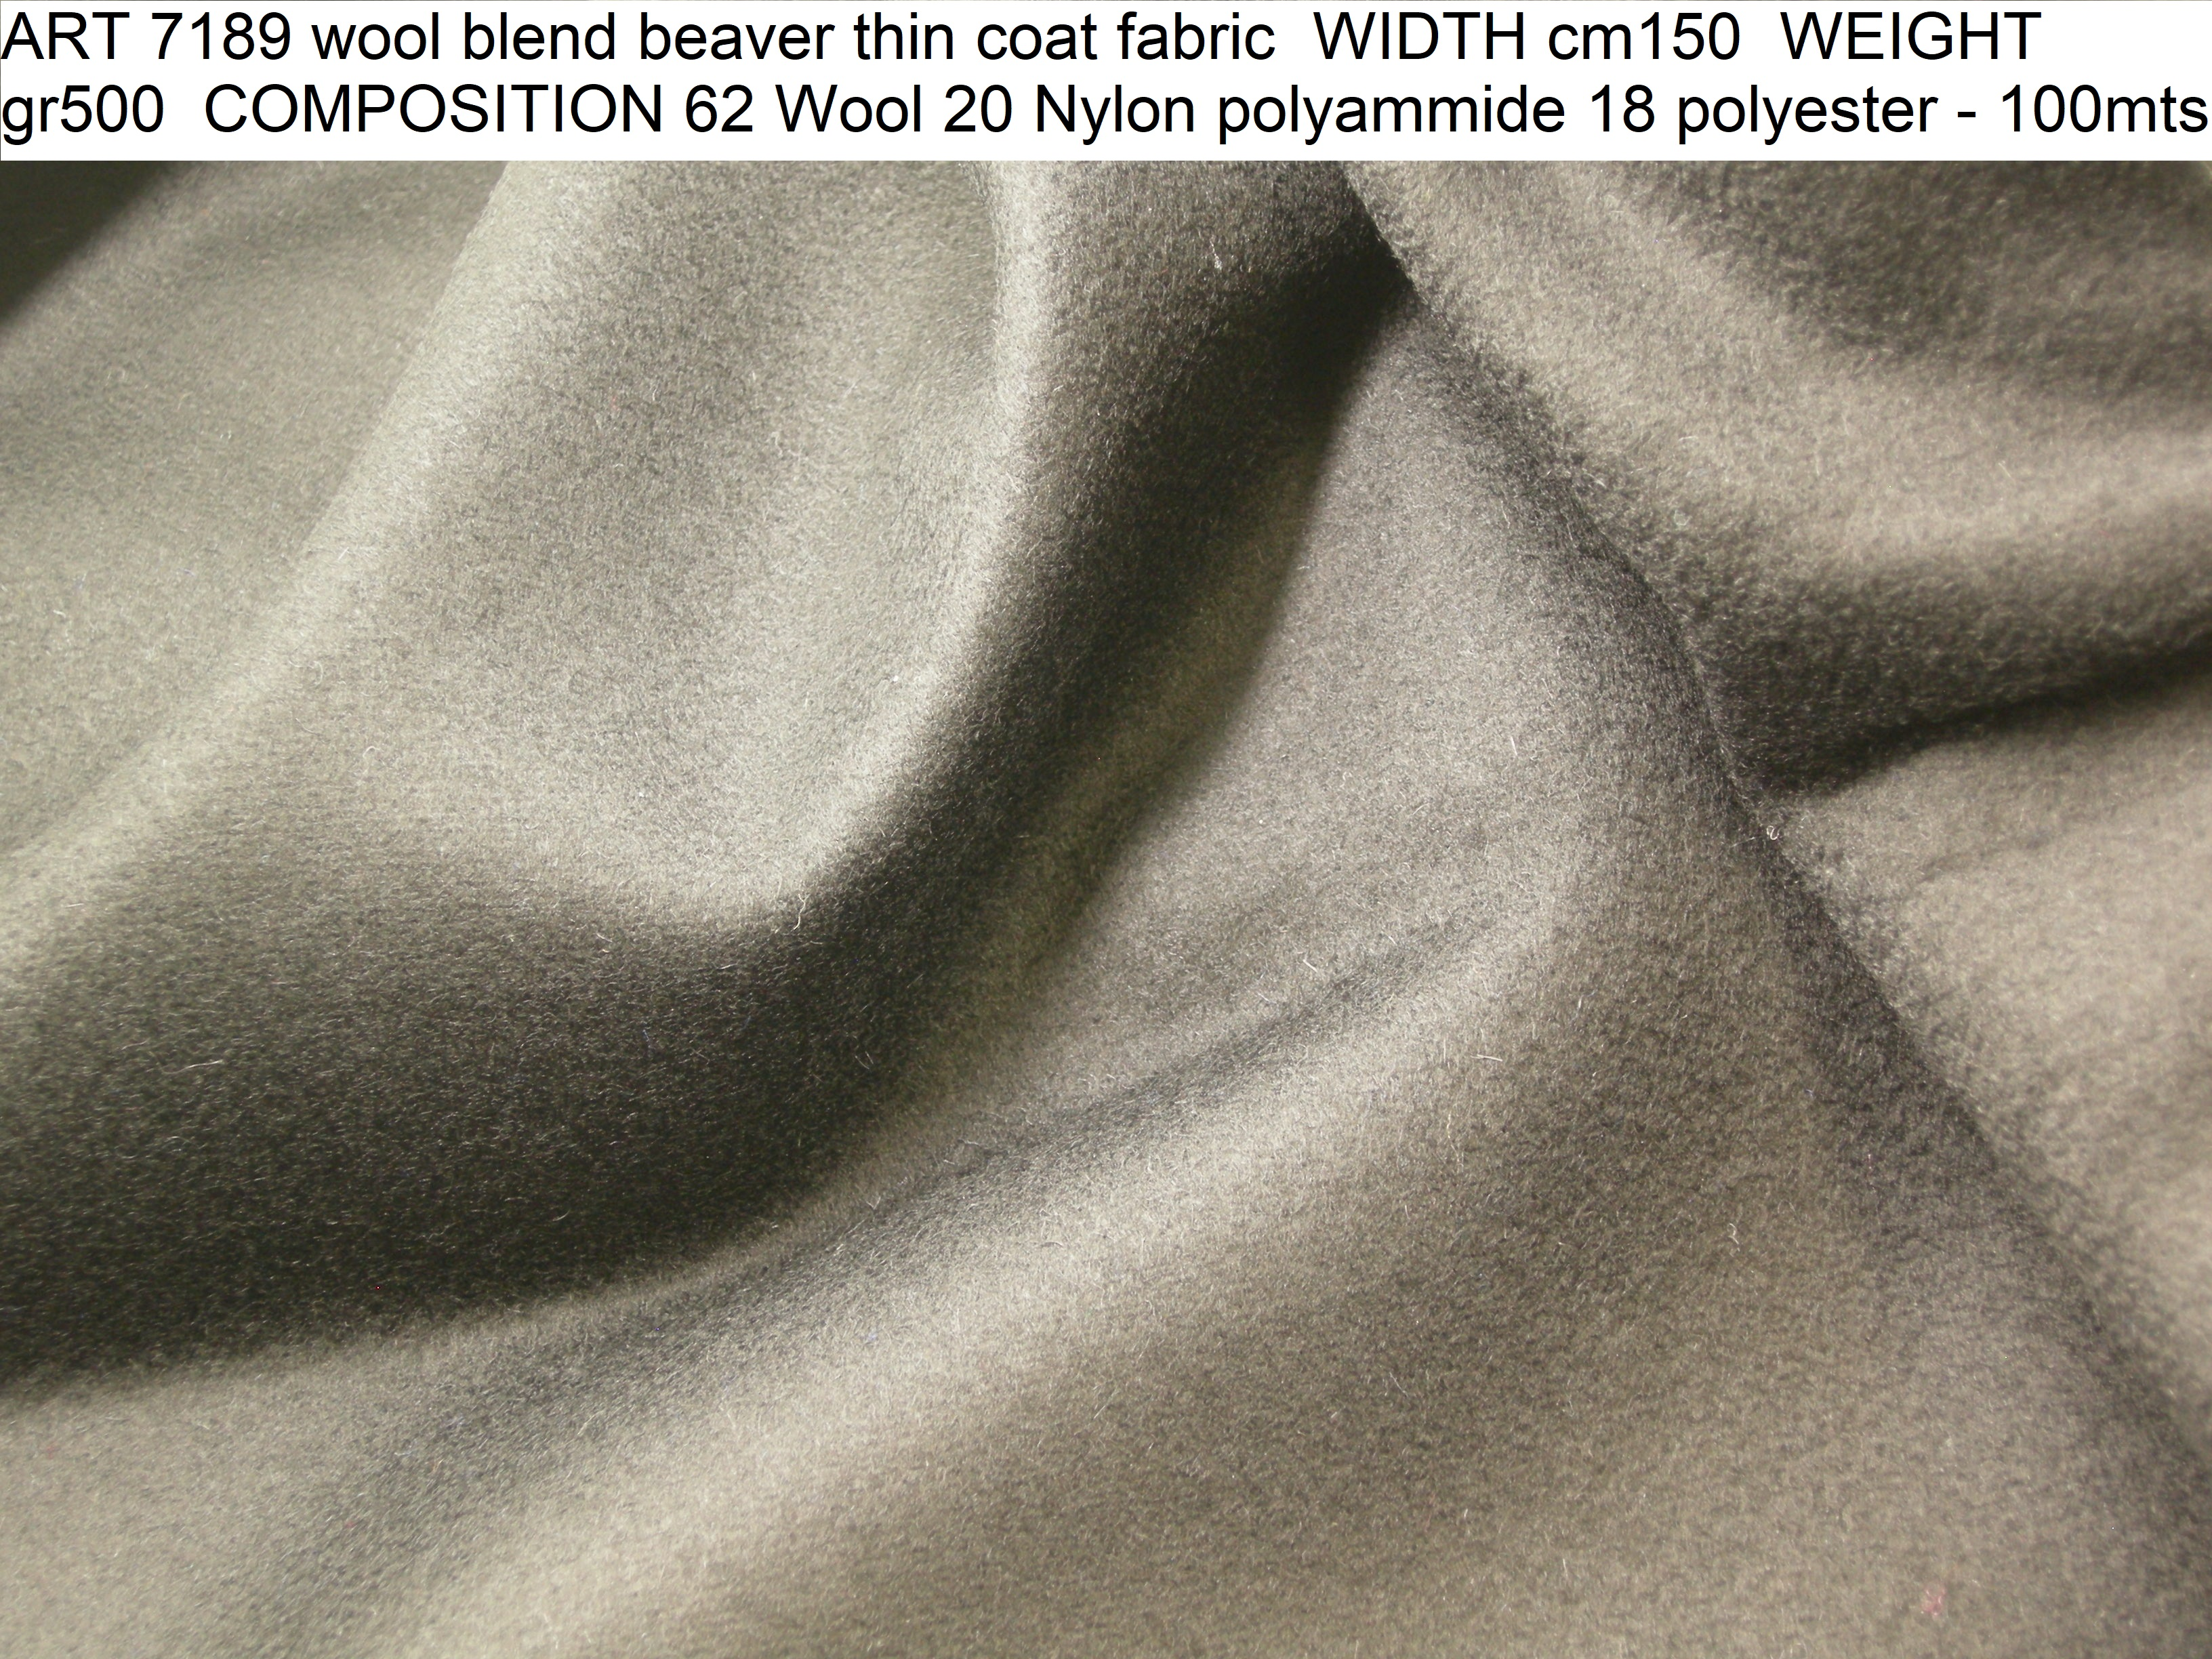 ART 7189 wool blend beaver thin coat fabric WIDTH cm150 WEIGHT gr500 COMPOSITION 62 Wool 20 Nylon polyammide 18 polyester - 100mts